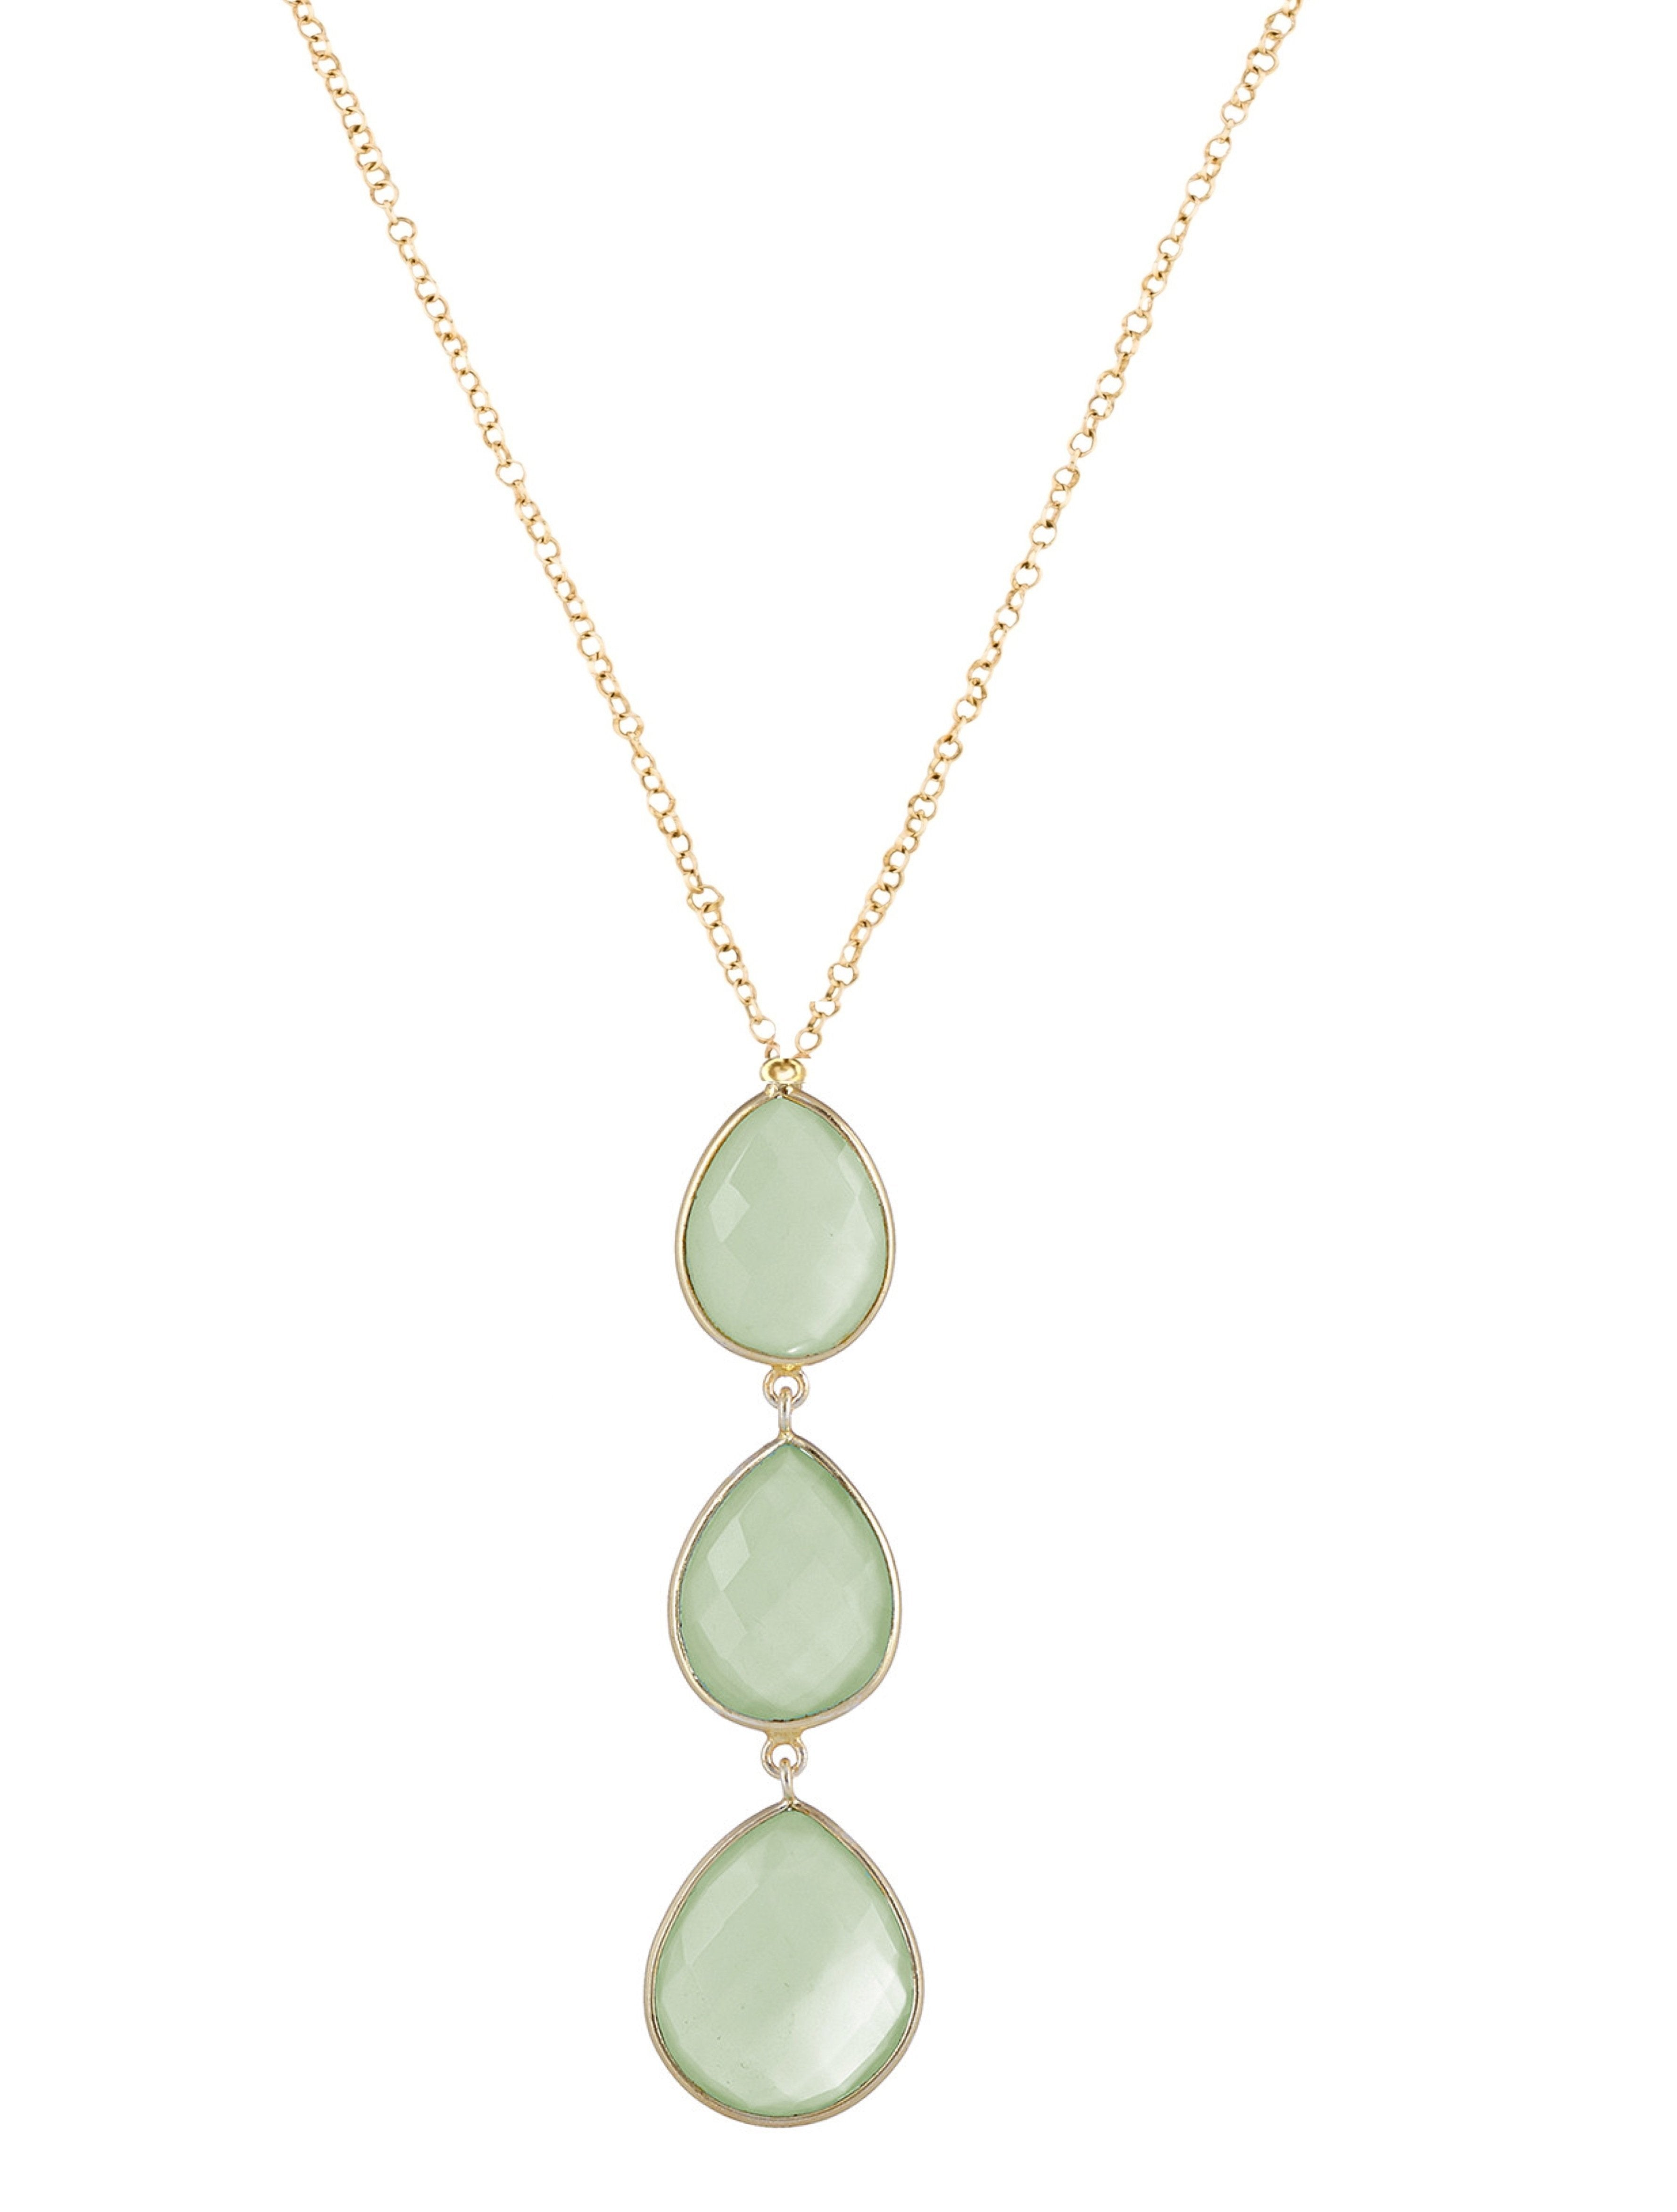 18K Gold Chalcedony Multi Pear Drop Necklace